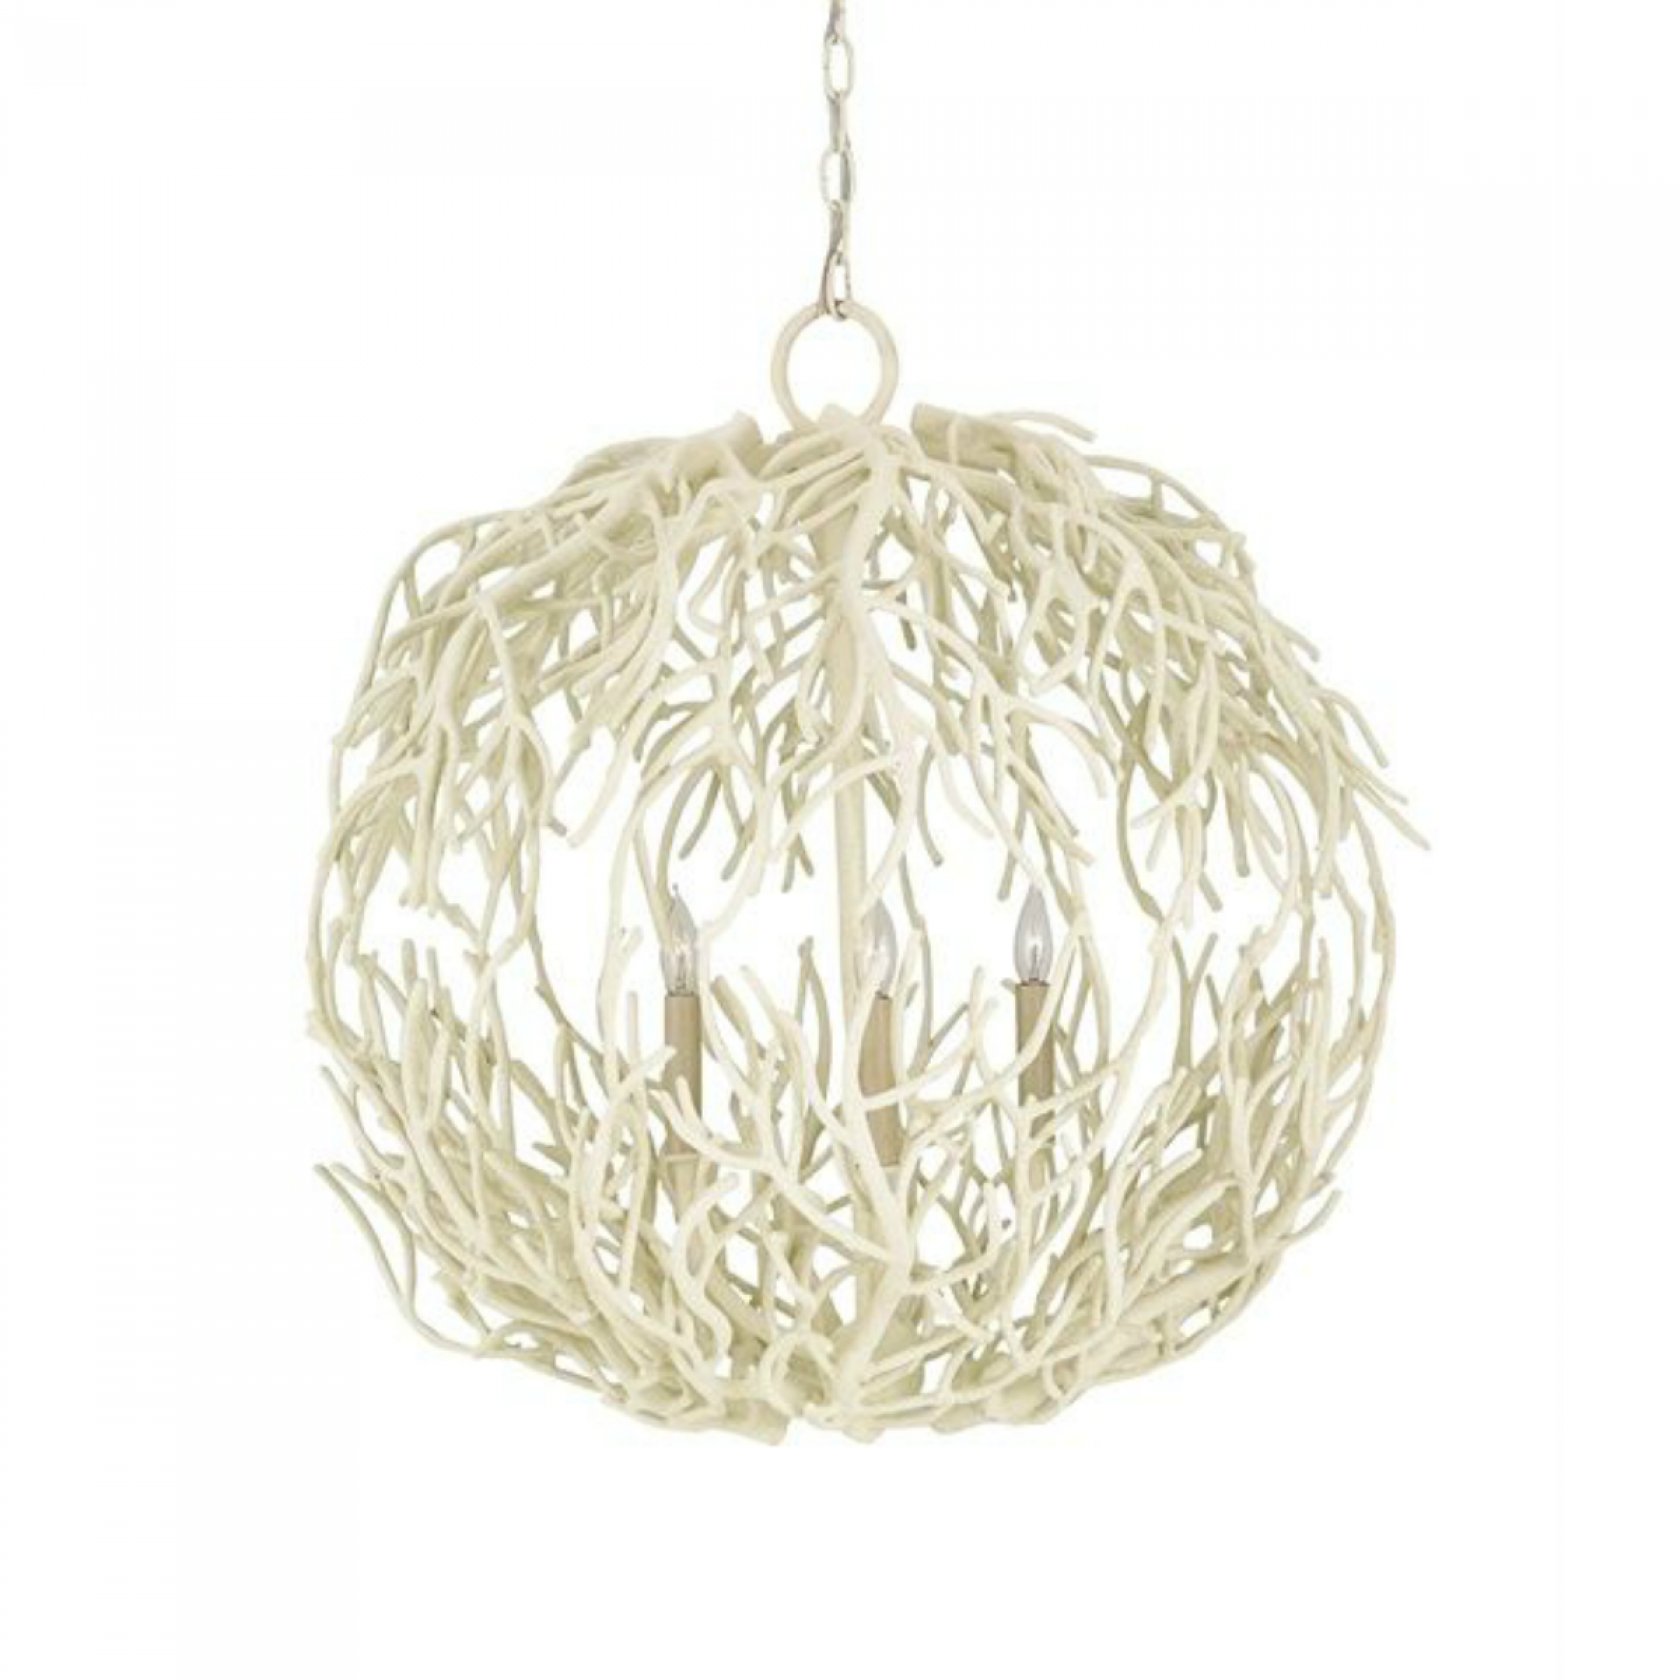 Tidal Wrought Iron with a White Coral Finish Orb Chandelier